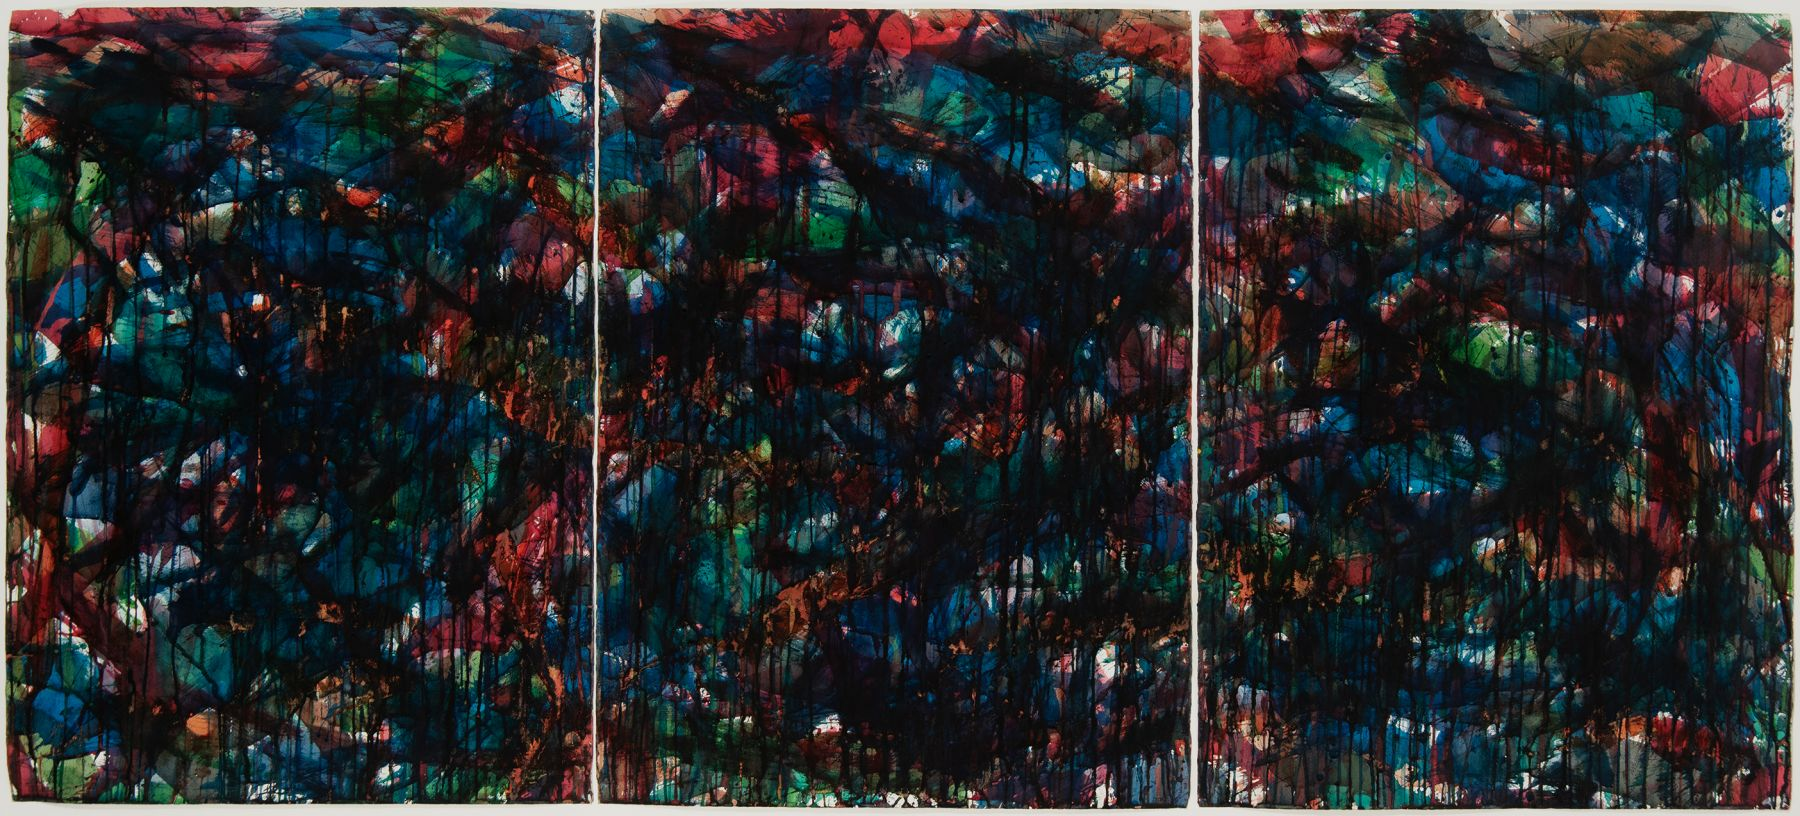 Norman Bluhm (1921-1999) Stained Glass Landscape #9, 1957